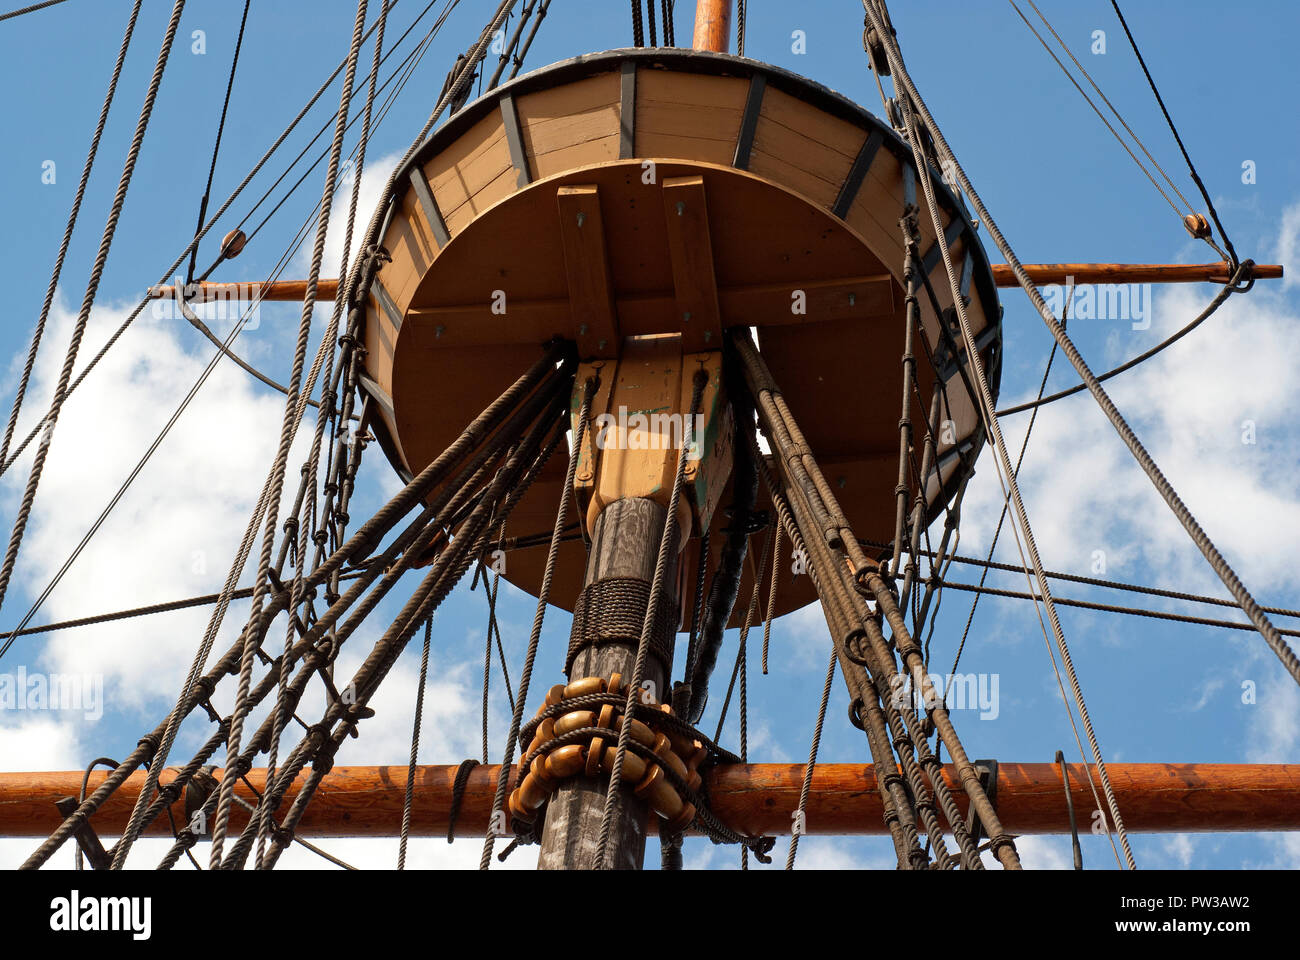 Crow's Nest der Mayflower II Schiff, Replik der ursprünglichen Mayflower Schiff, Plymouth, Plymouth County, Massachusetts, USA Stockbild